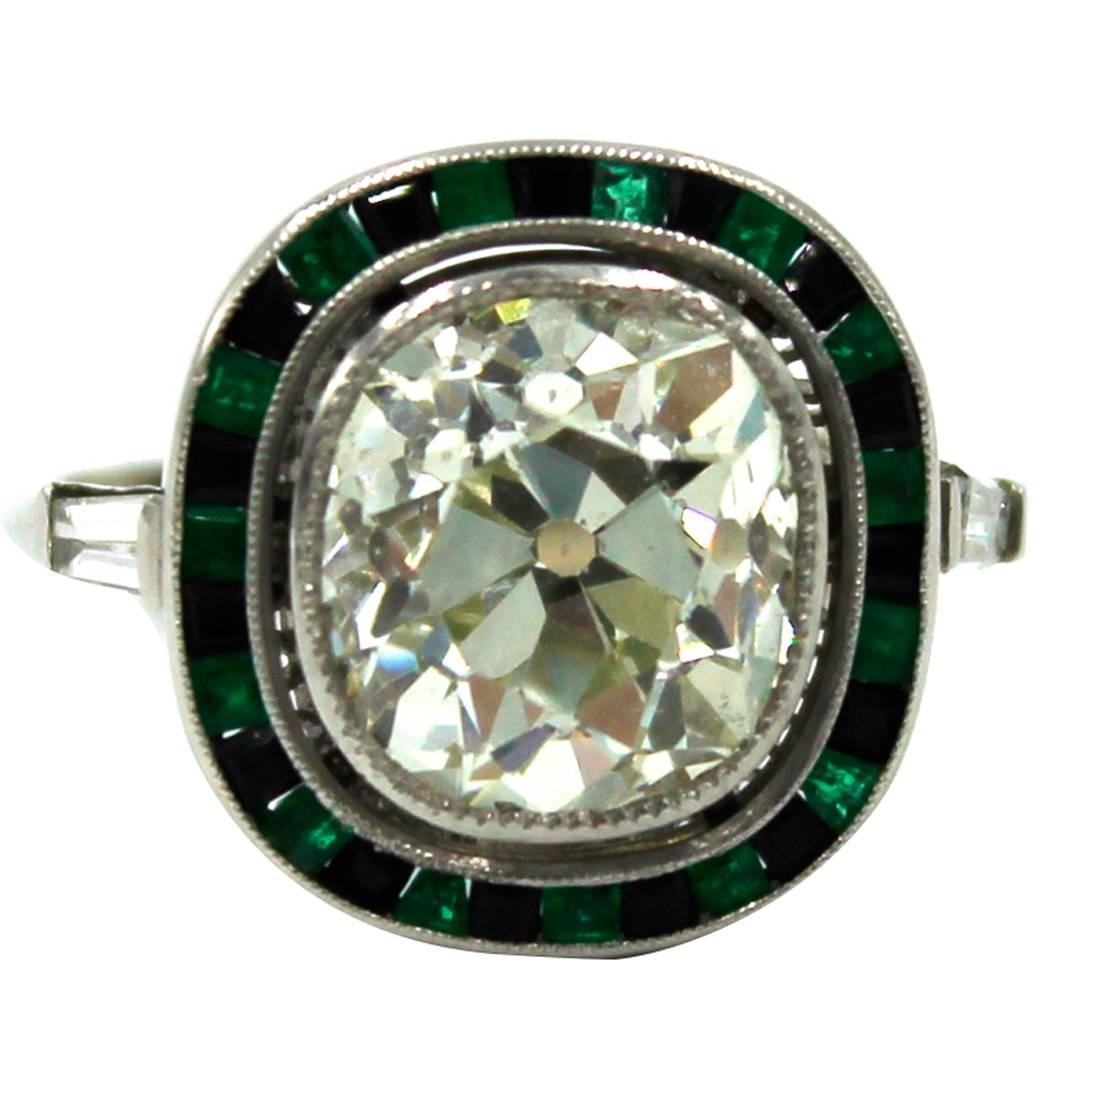 4 25 carat cushion cut gemstone platinum ring at